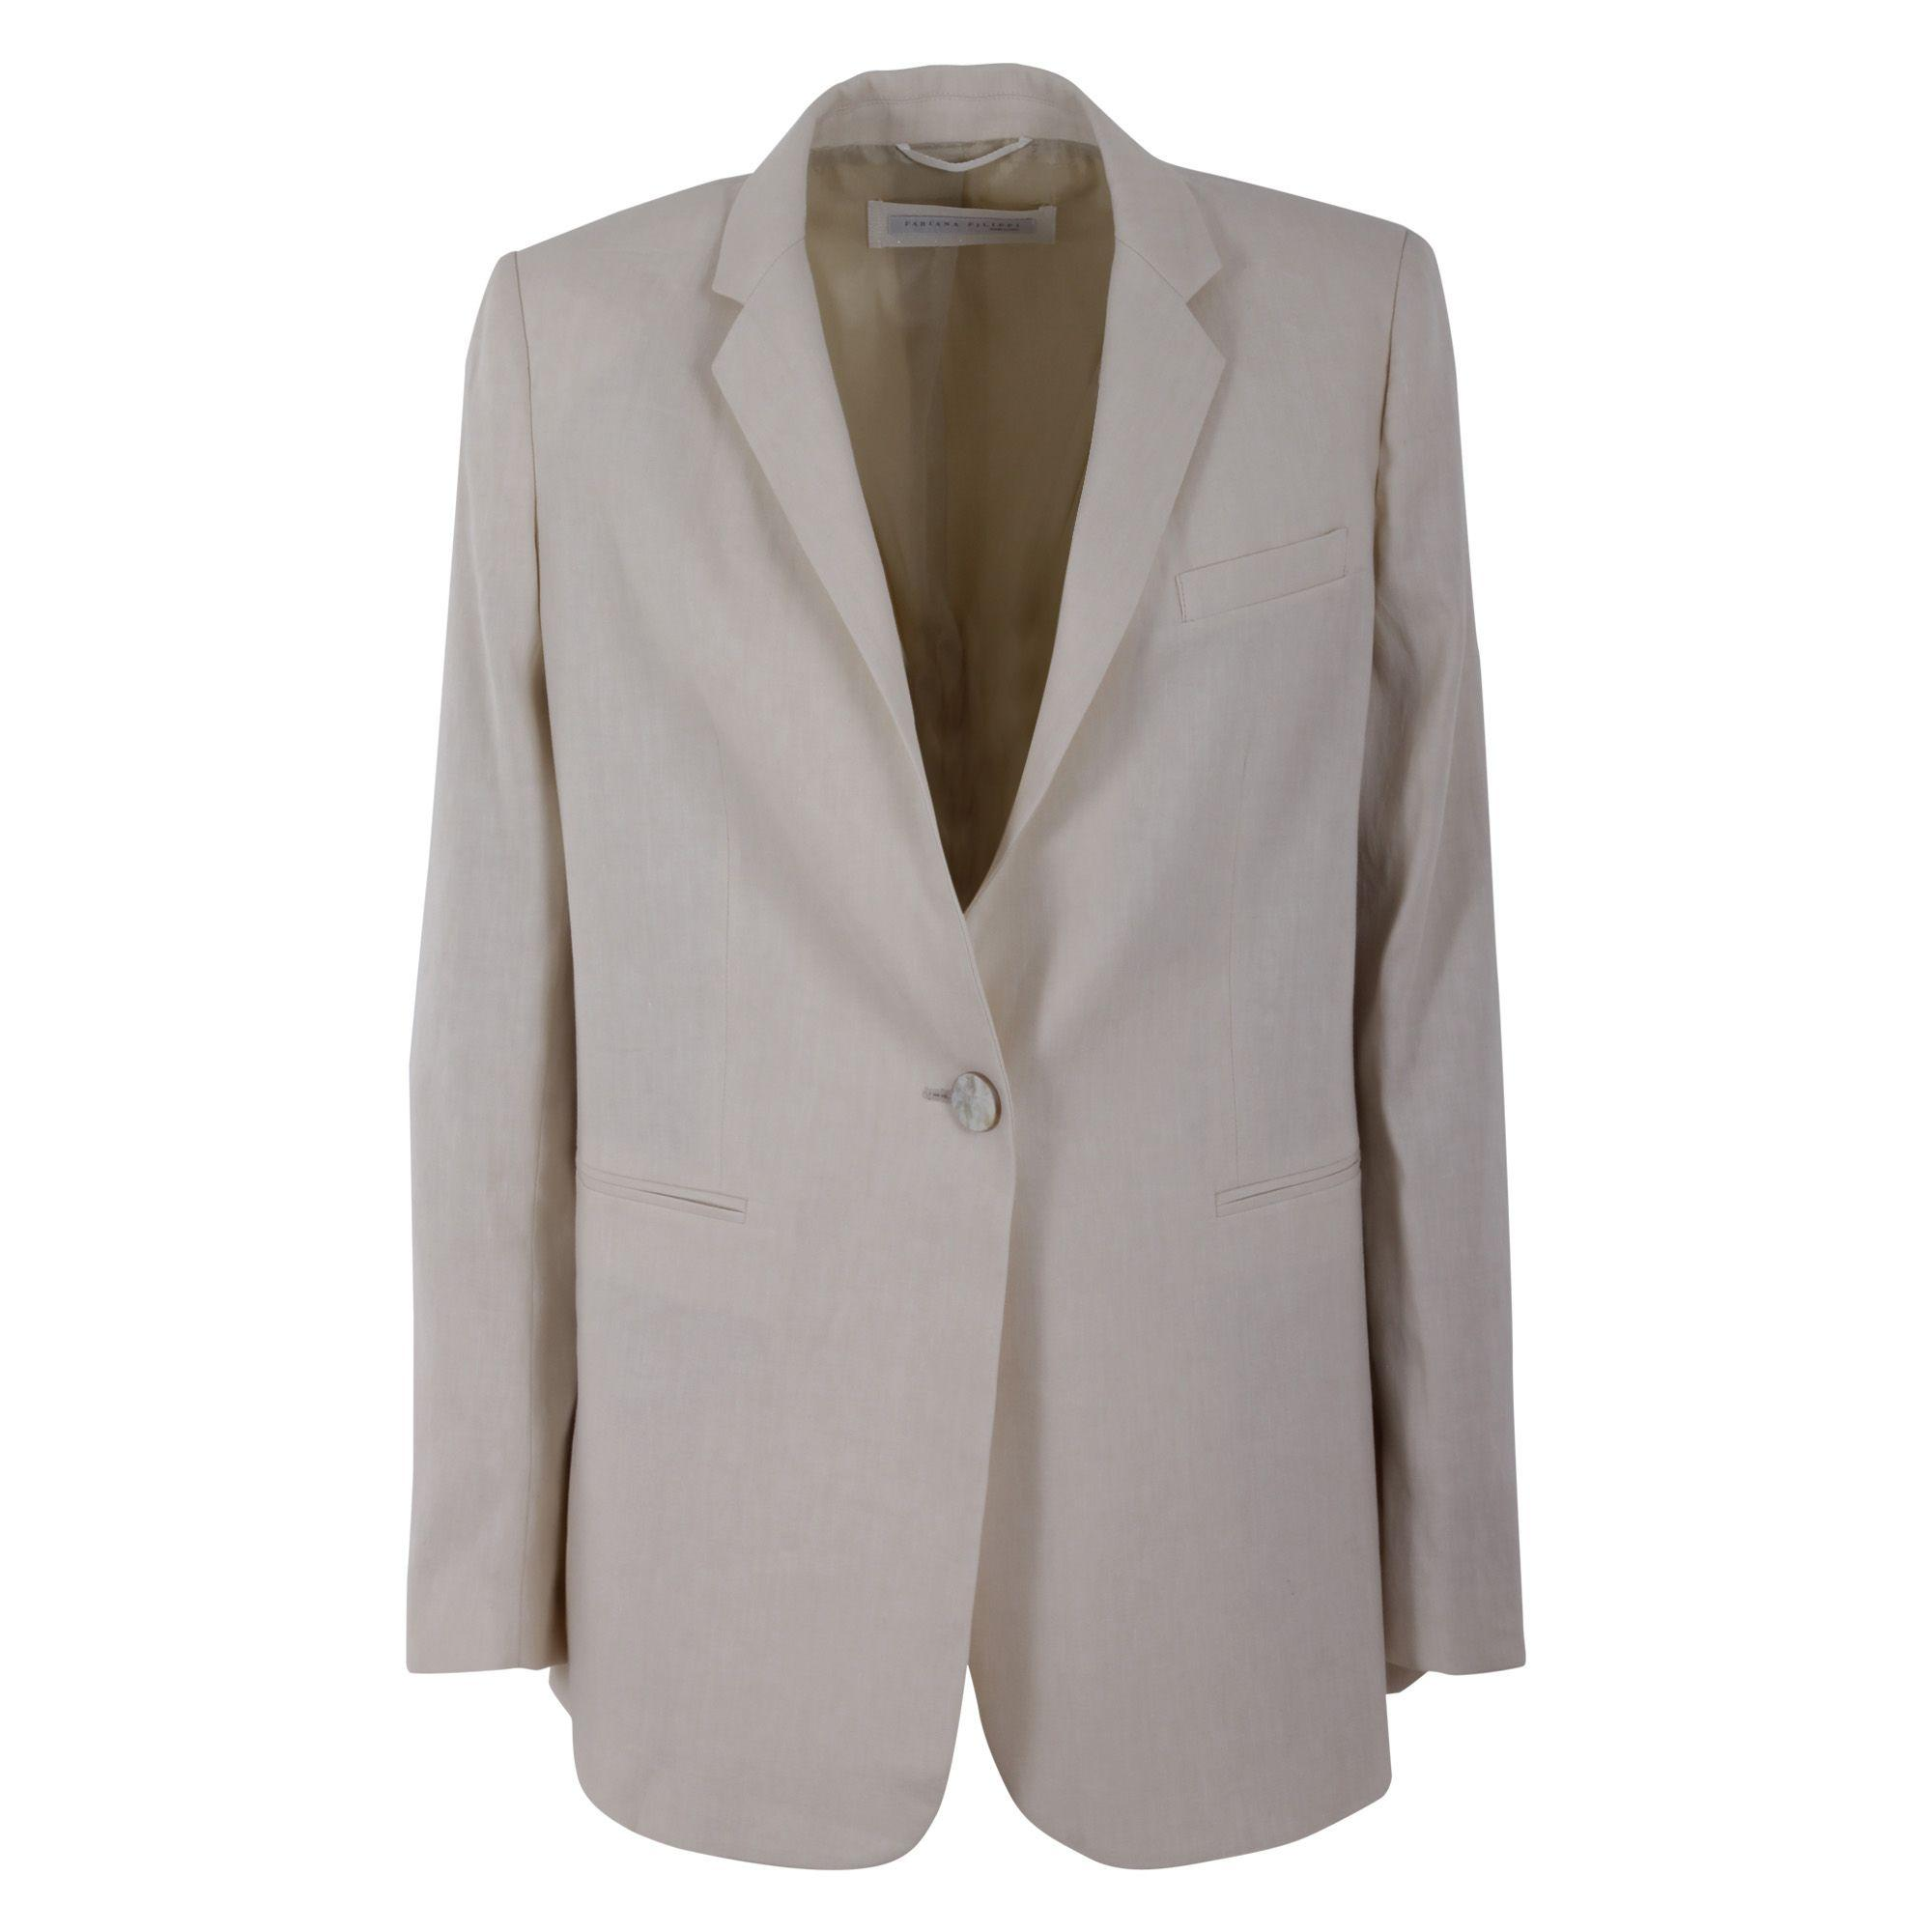 Fabiana Filippi Linen Blend Jacket In Vanilla